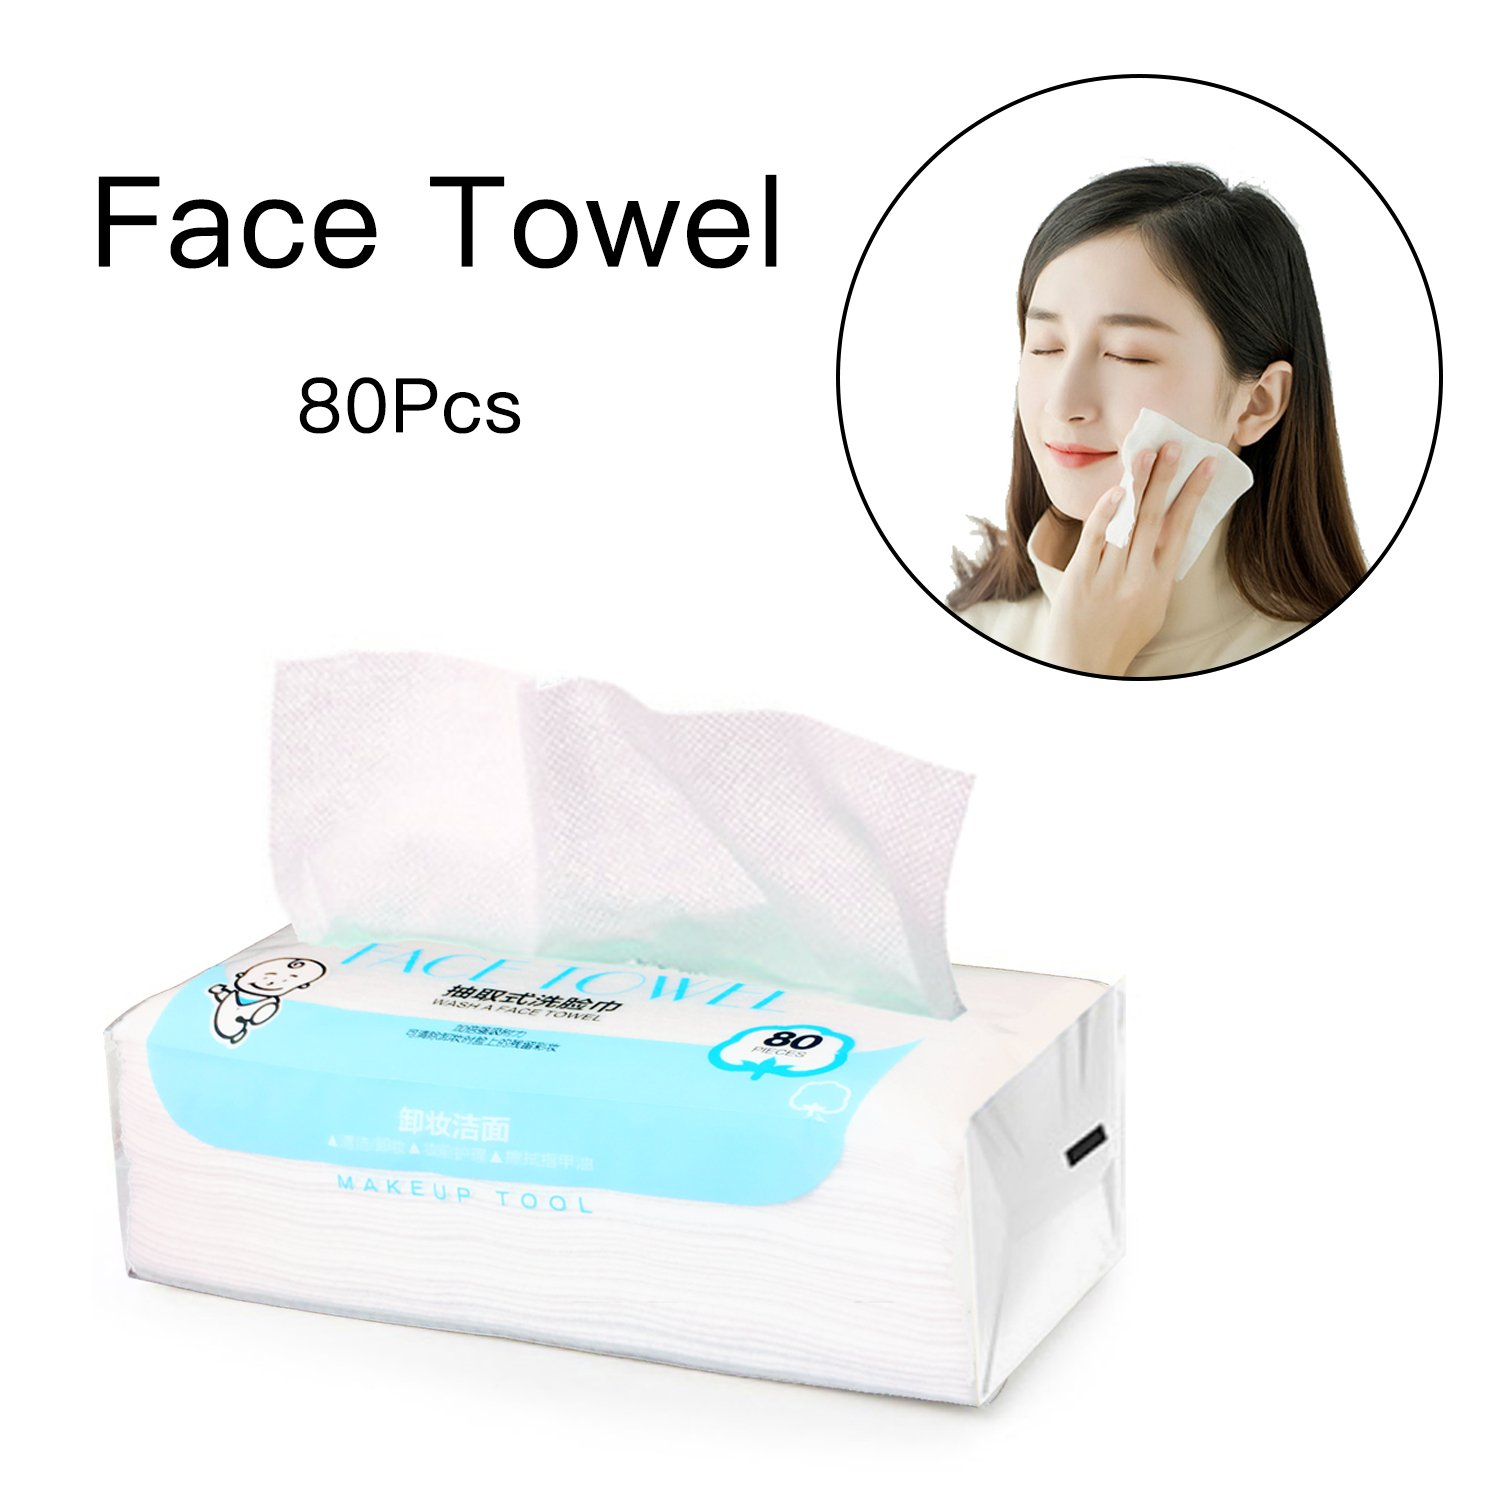 Facial Cotton Tissue Cotton Soft Towel Durable Multi-purpose Wipes for Cleaning Face, Makeup Remover, Baby Care, Dry Wet Amphibious 80Pcs 7.9inch×7.9inch